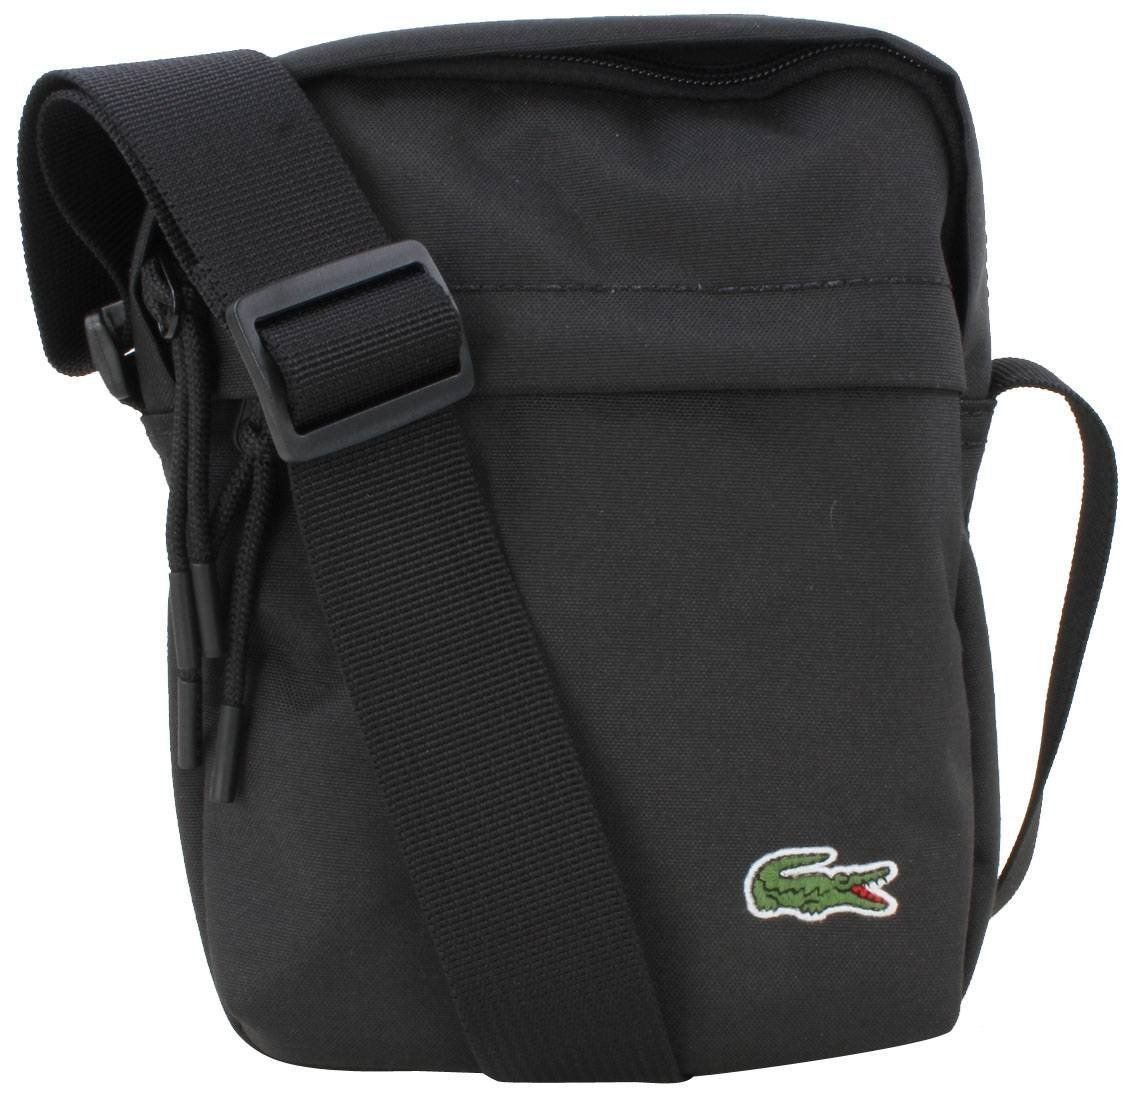 640e39741e8f4 LACOSTE Neocroc Vertical Camera Bag Tannin  Amazon.co.uk  Clothing ...